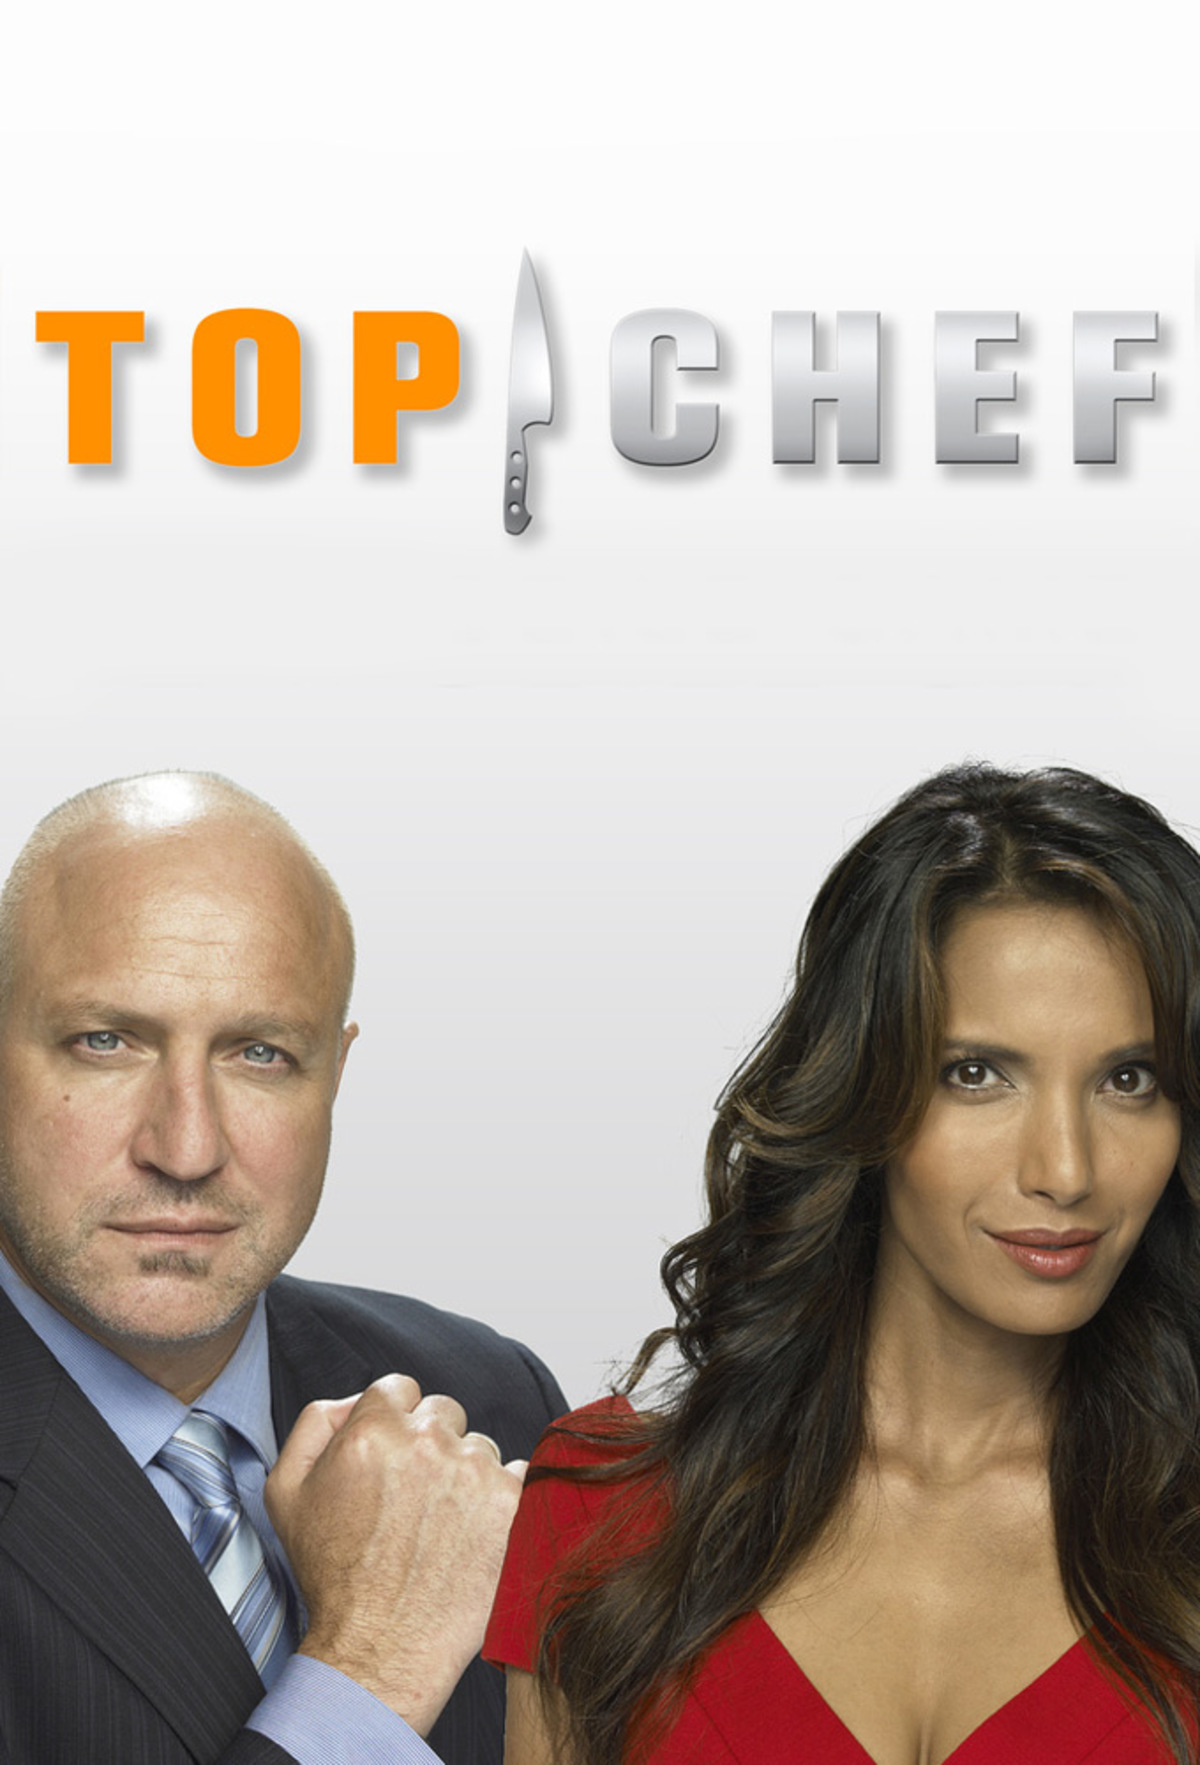 Top Chef - Season 17 Episode 1 - It's Like They Never Left